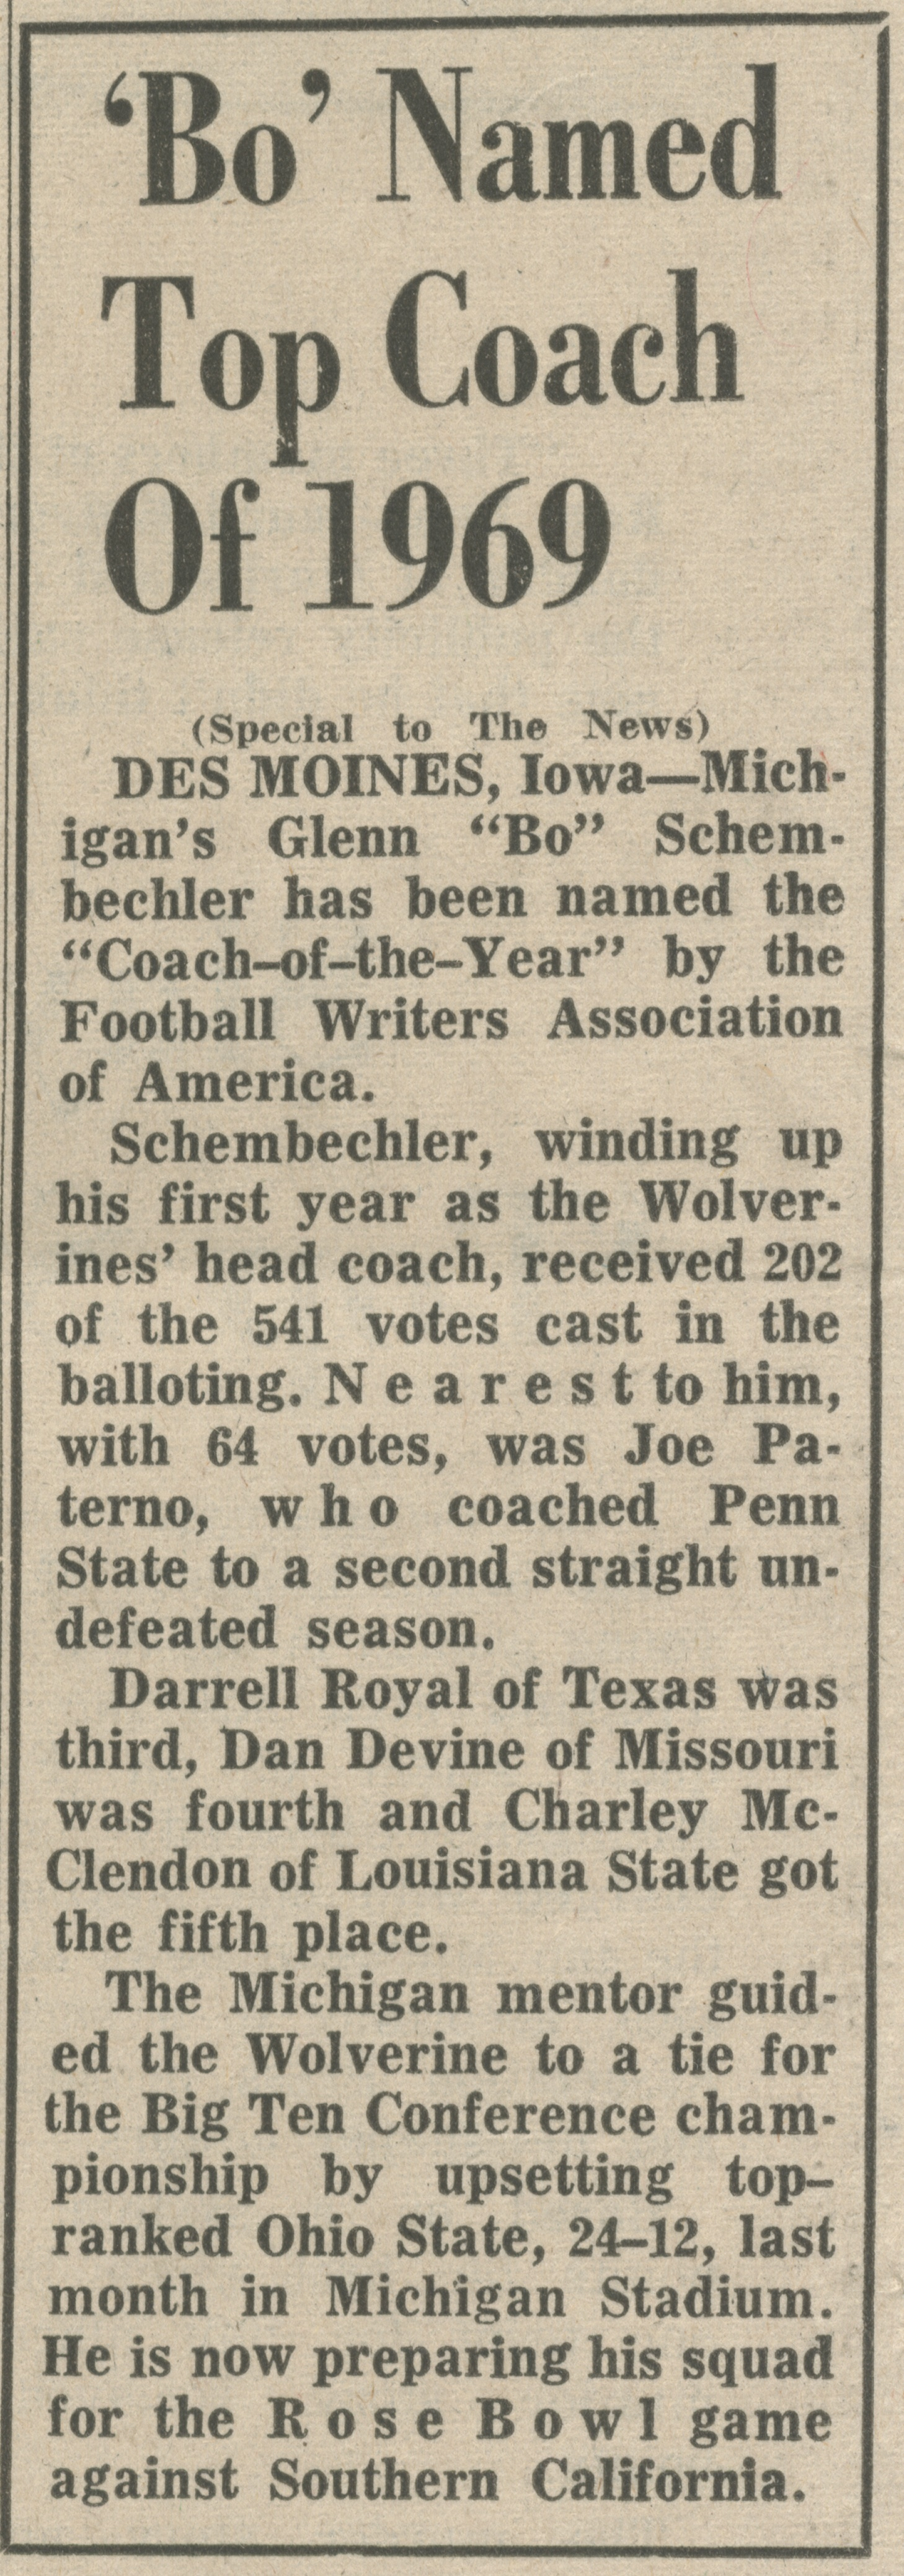 'Bo' Named Top Coach Of 1969 image